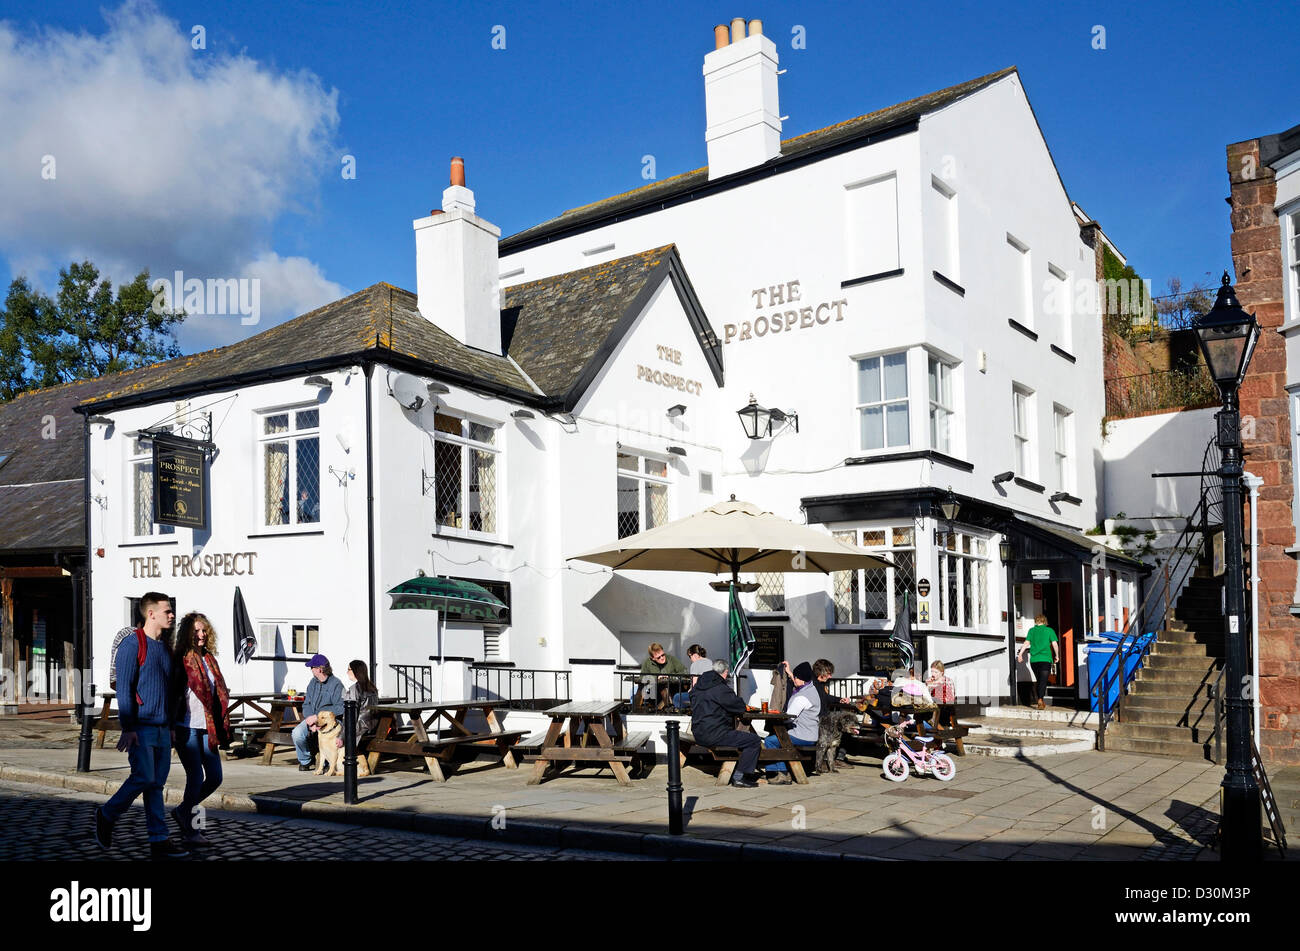 The Prospect Pub on the quay at Exeter in Devon, UK - Stock Image